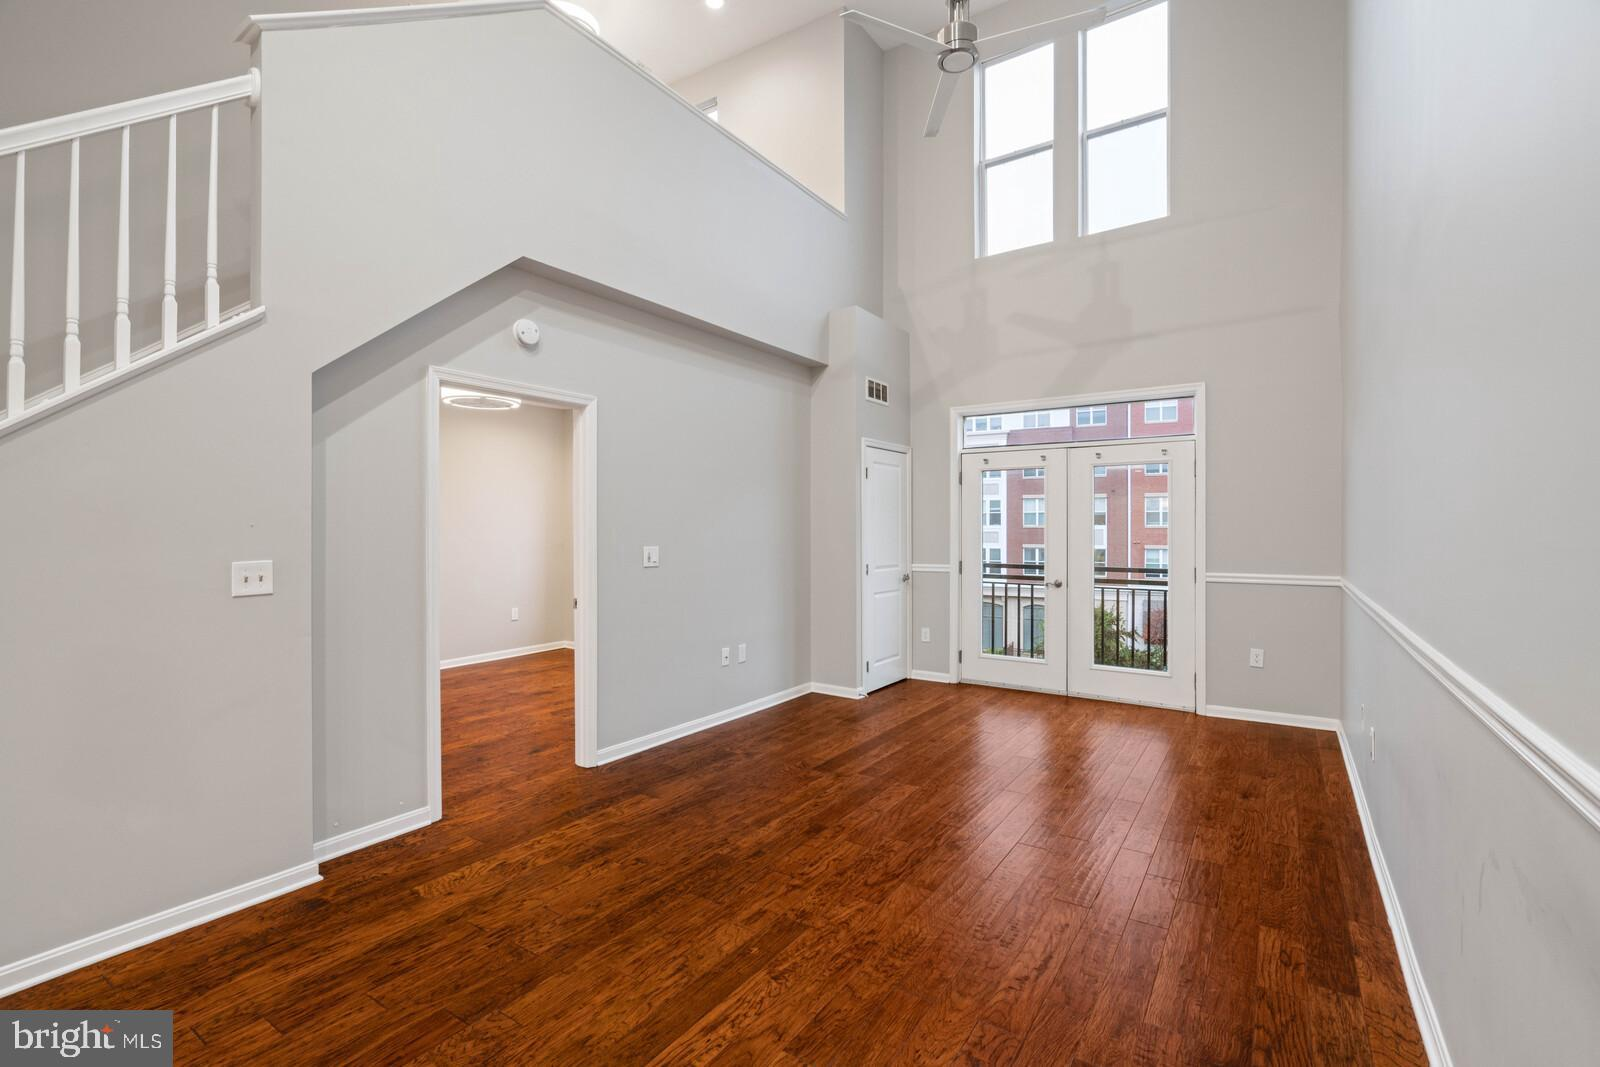 Rarely available Penthouse unit with an EXTRA **LOFT space in PRIME **LOCATION. Across street from Dunn Loring Metro and Harris Teeter, shops, restaurants, and short walk to Target and Mosaic District. Minute to I-495, I-66, Rt.50 and Rt.29.In-unit washer & dryer. **HARDWOOD FLOORS THROUGHOUT THE UNIT. ** RENOVATED BATH, lots of recessed lighting. Condo fee includes water & sewer, security, fitness center, basketball court, pool, barbecue, party rooms, business center, and electric-car charging station. **STORAGE UNIT and **2 ASSIGNED GARAGE PARKING spots convey.